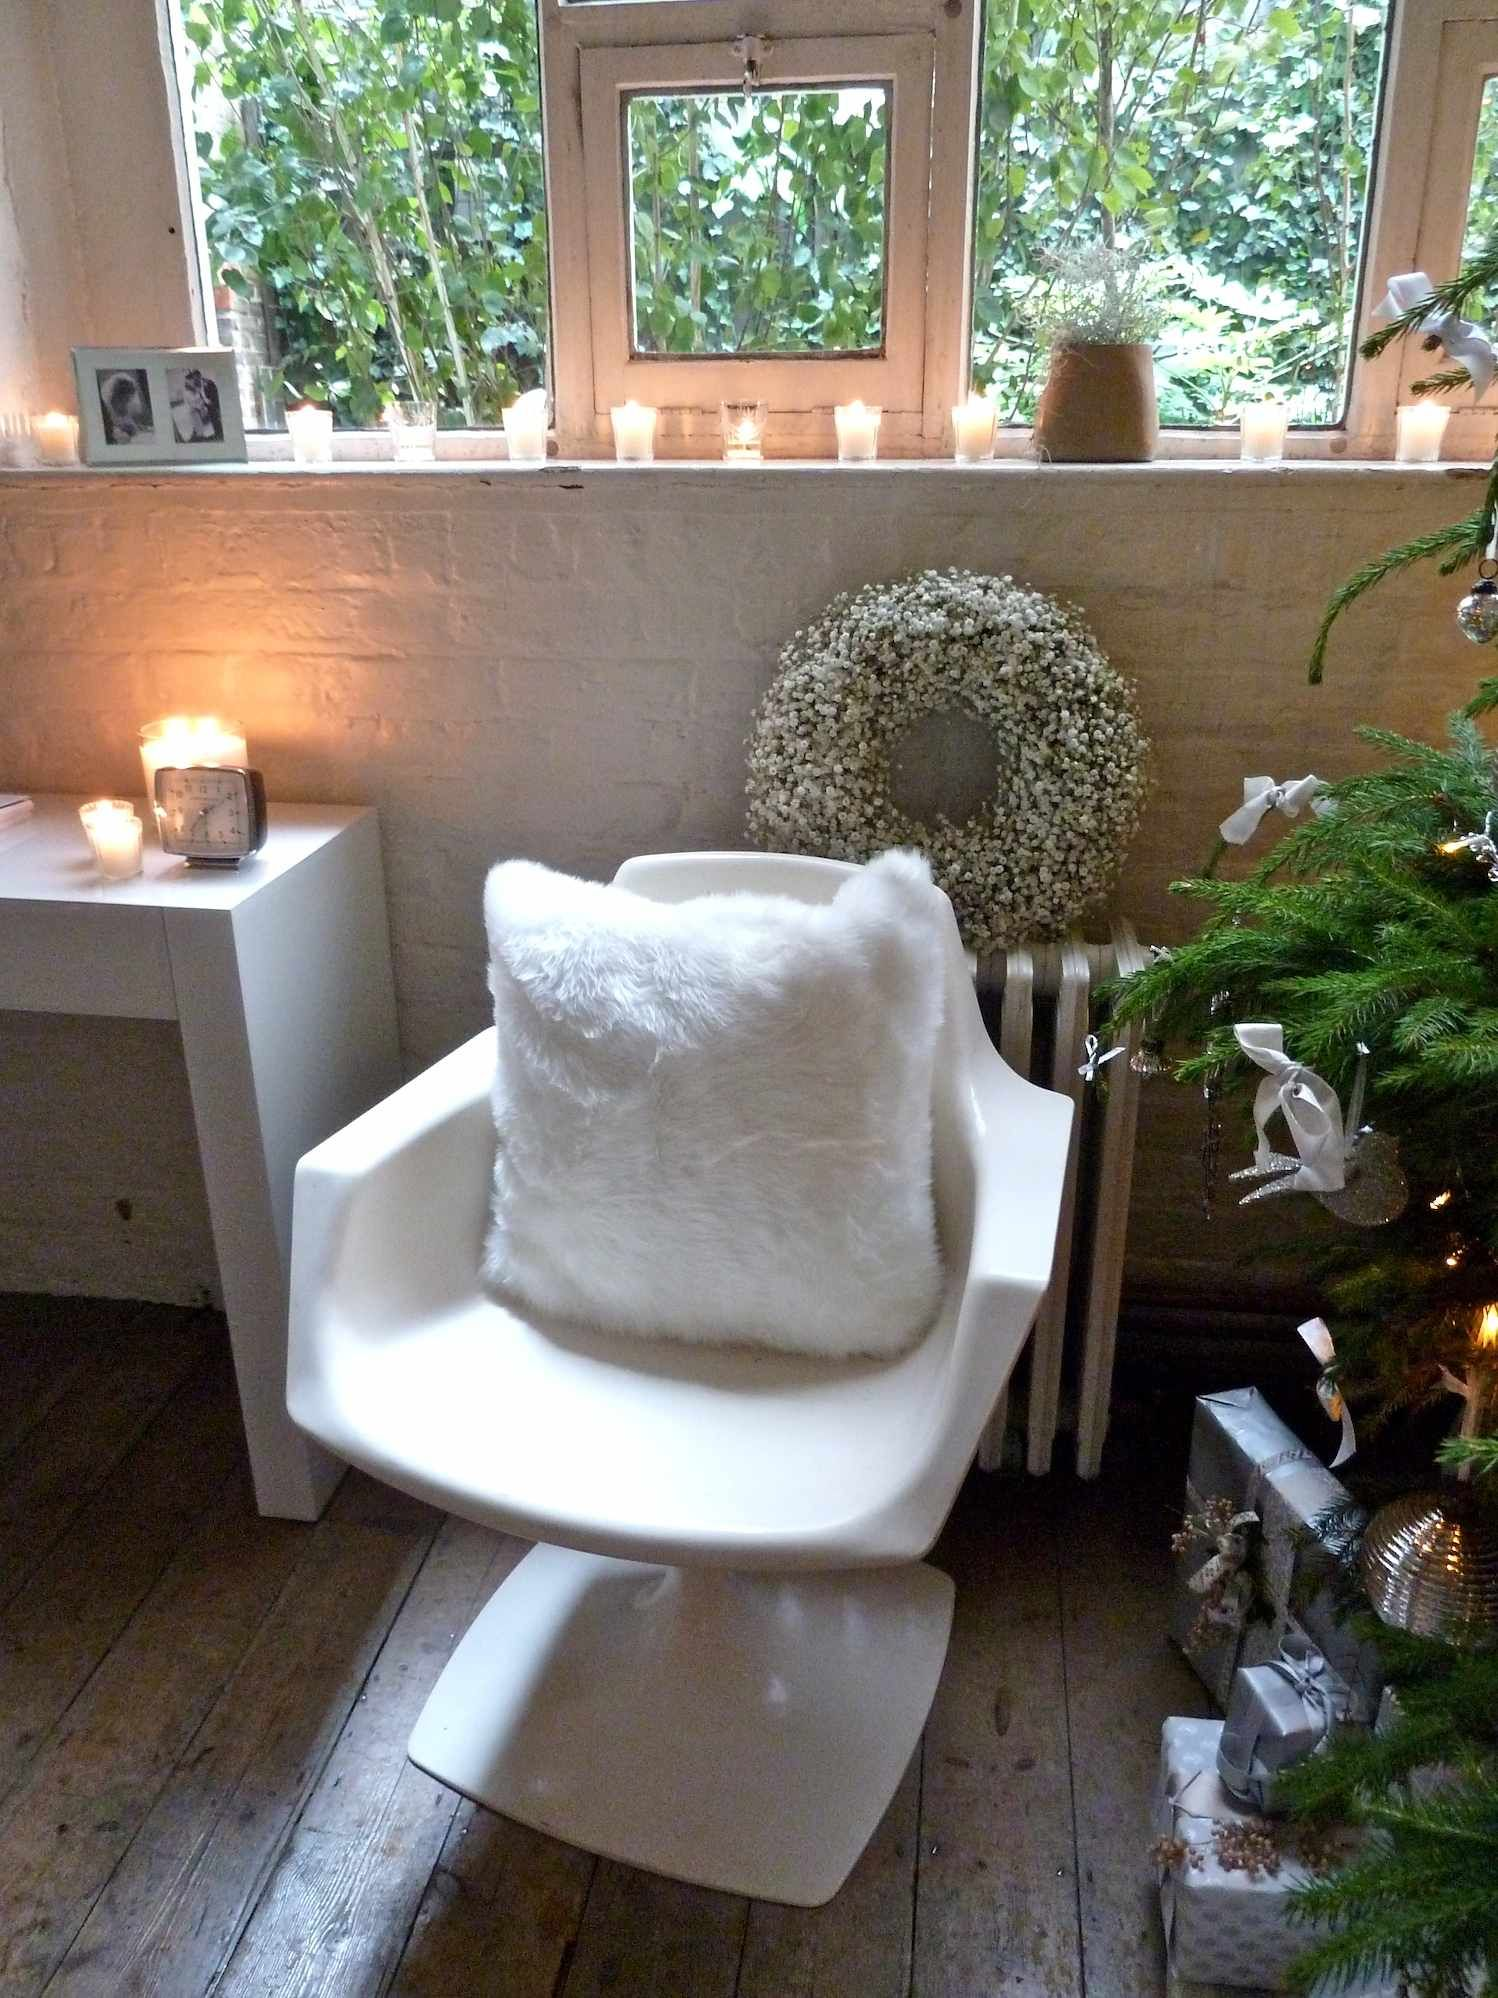 There is a whole series of shearling cushions and bean bags which feel divine and look at the gypsum wreath too, Xmas at The White Company 2012